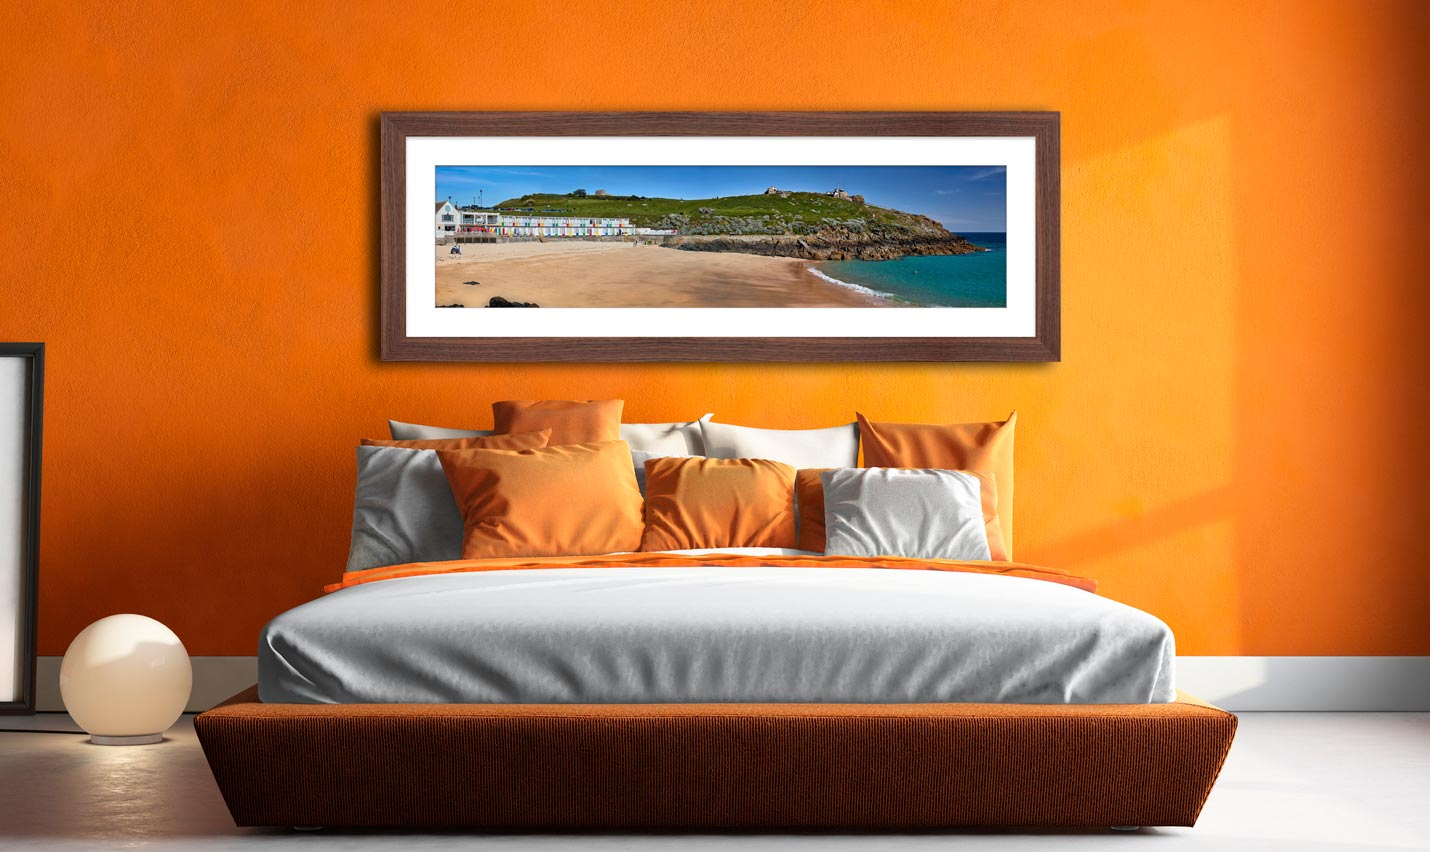 Porthgwidden Beach and The Island - Framed Print with Mount on Wall